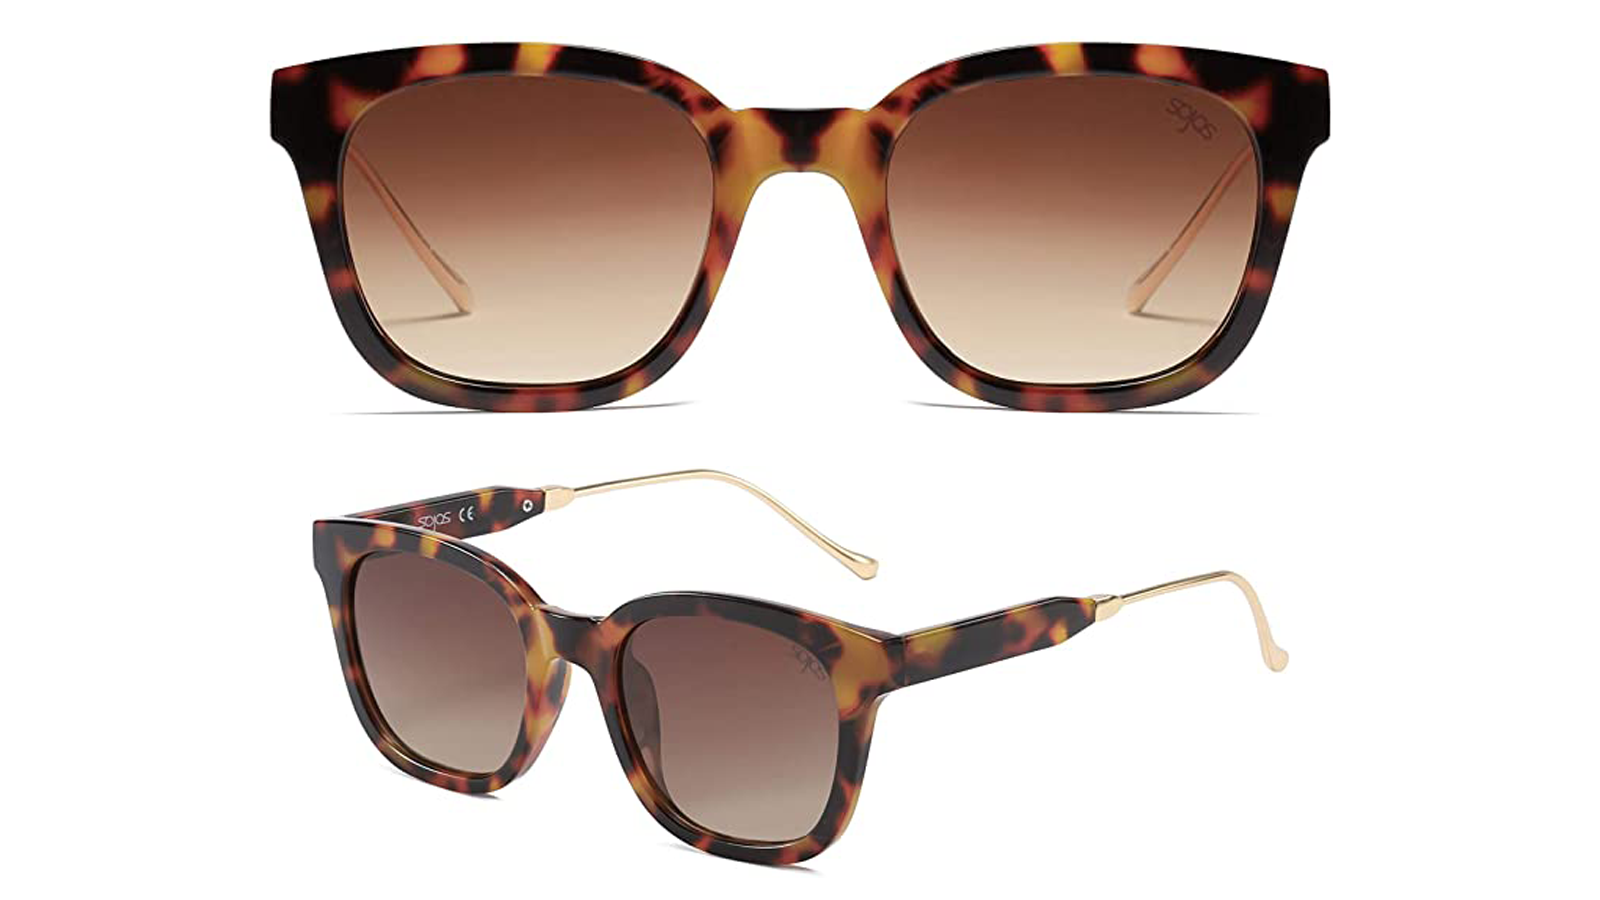 Protect Your Eyes and Look Stylish This Summer With These Unisex Sunglasses